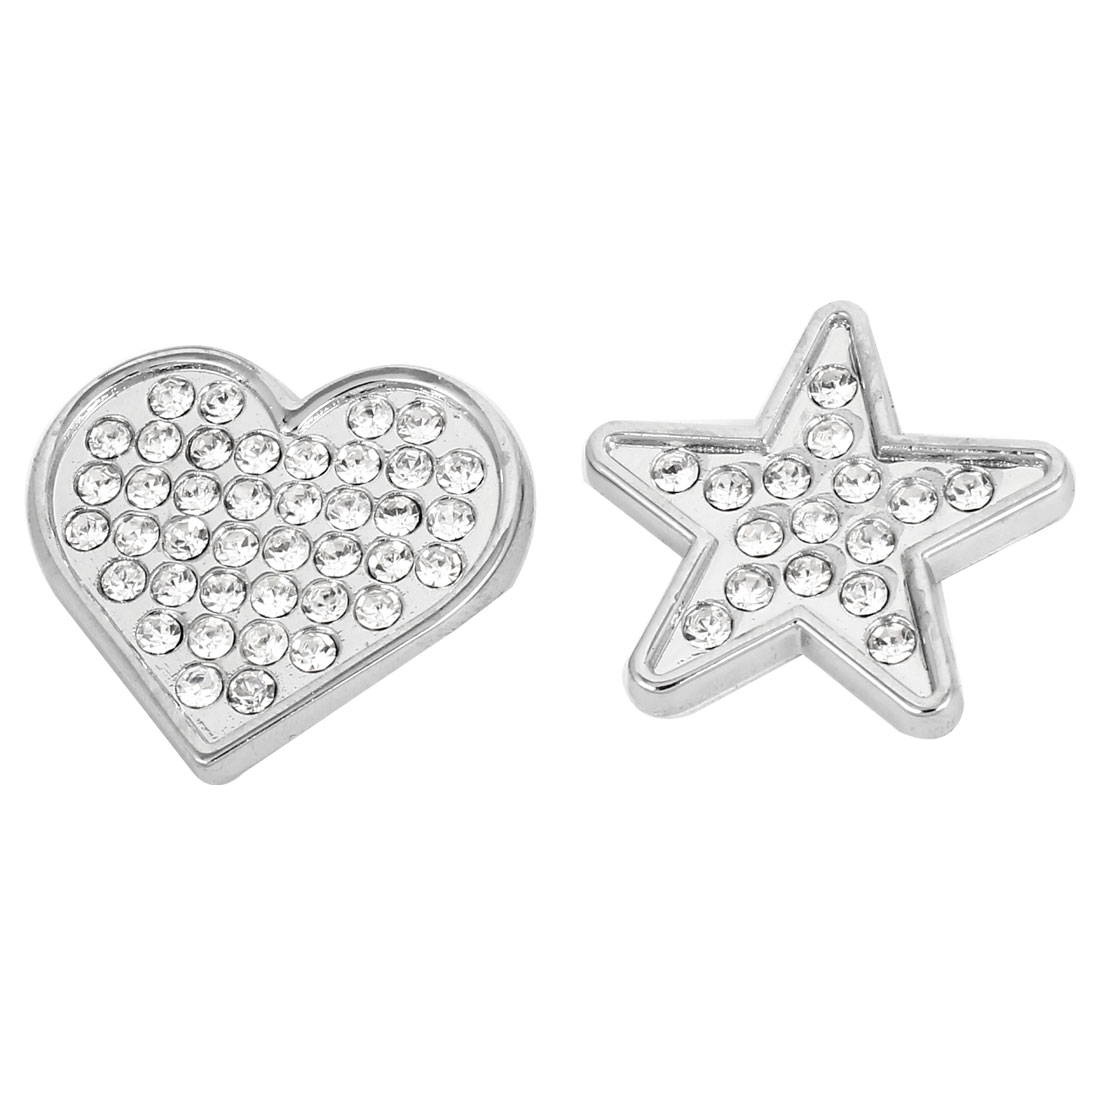 2 Pcs Car Decor Silver Tone Self Adhesive Rhinestone Star Heart Shaped Stickers